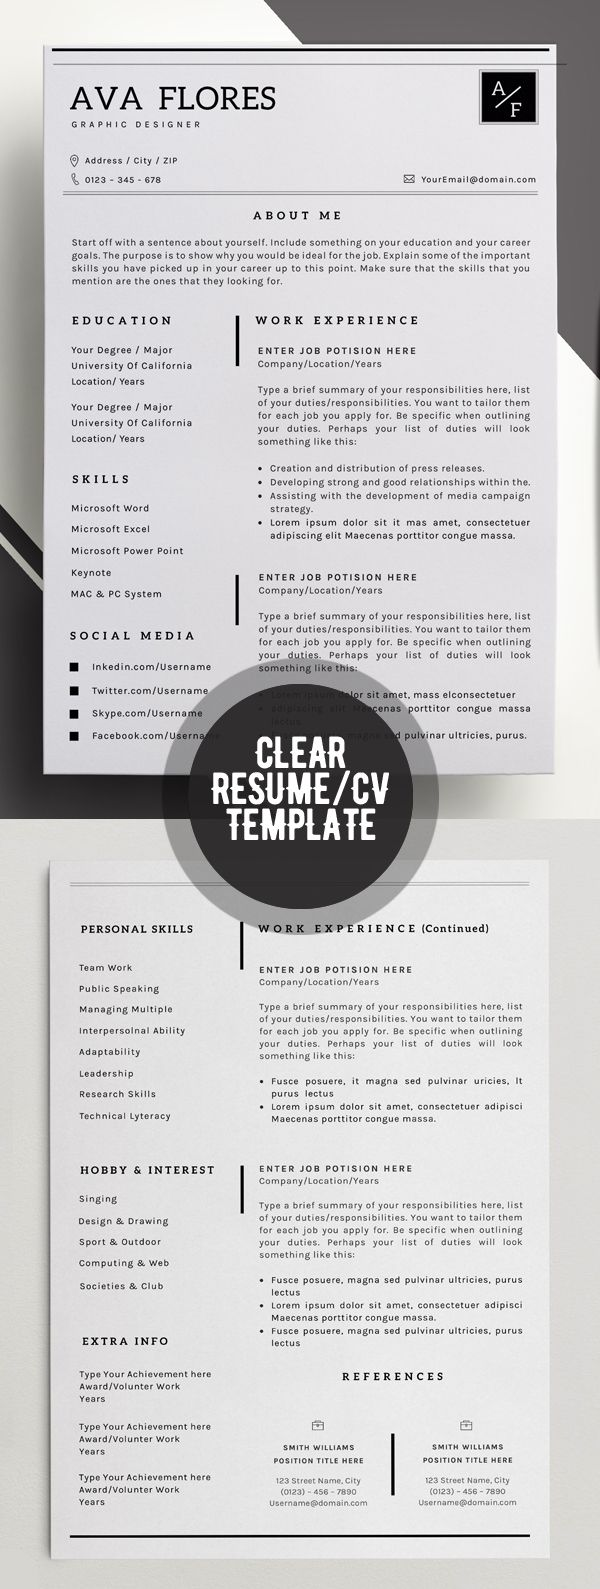 98 best Resume designs images on Pinterest | Resume design, Cv ...